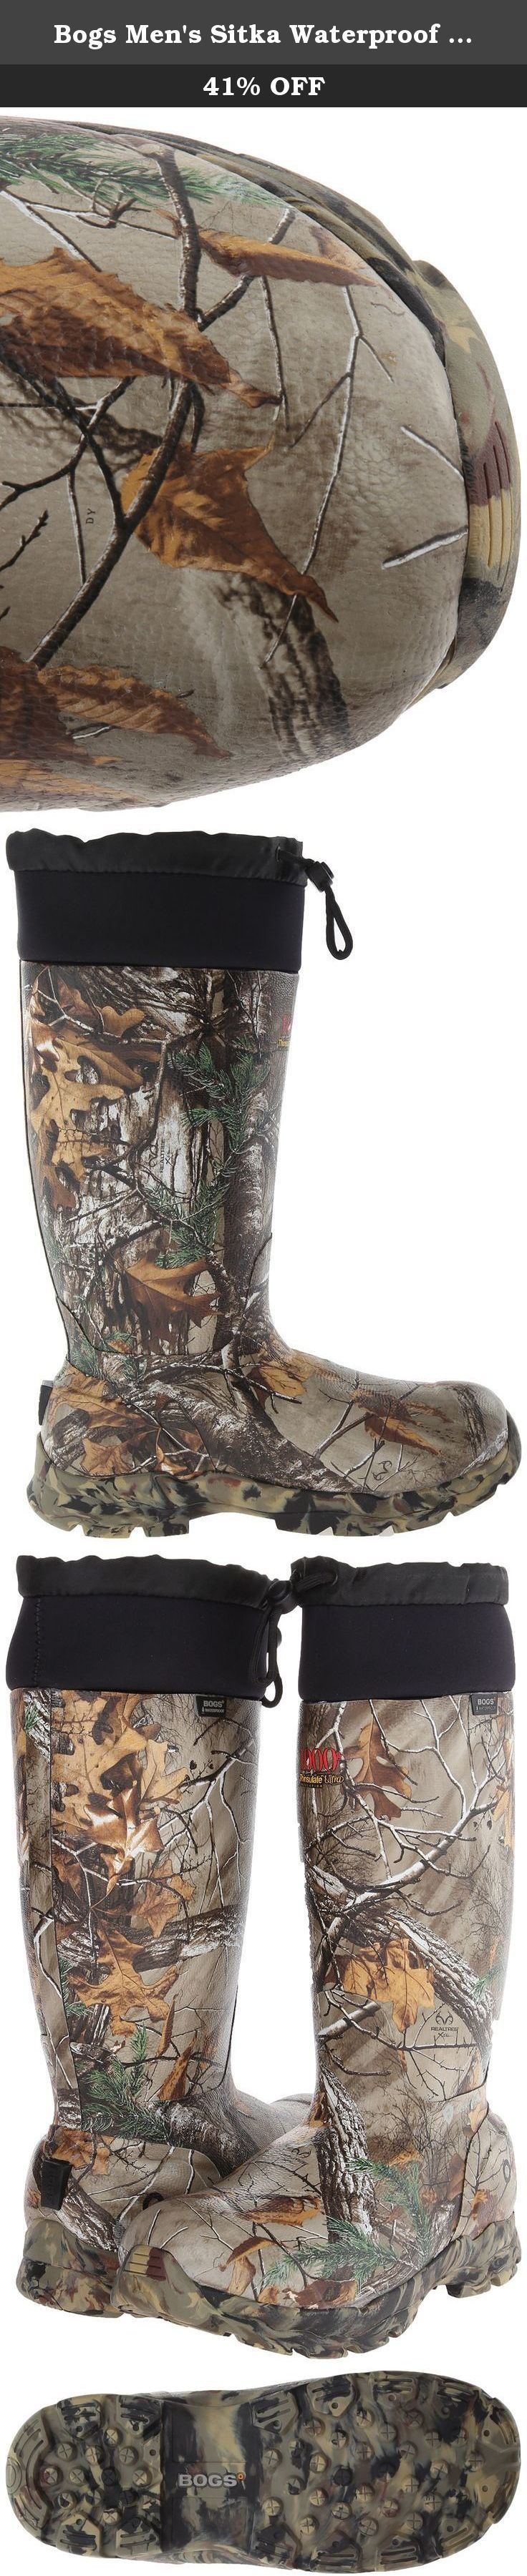 Bogs Men's Sitka Waterproof Hunting Boot,Real Tree,11 M US. Protective and comfortable, the Bogs Sitka hunting boot features 1000 grams of Thinsulate� insulation to keep feet warm during the most unforgiving days. The Sitka is available in two styles of camouflage print: RealTree� and Mossy Oak.